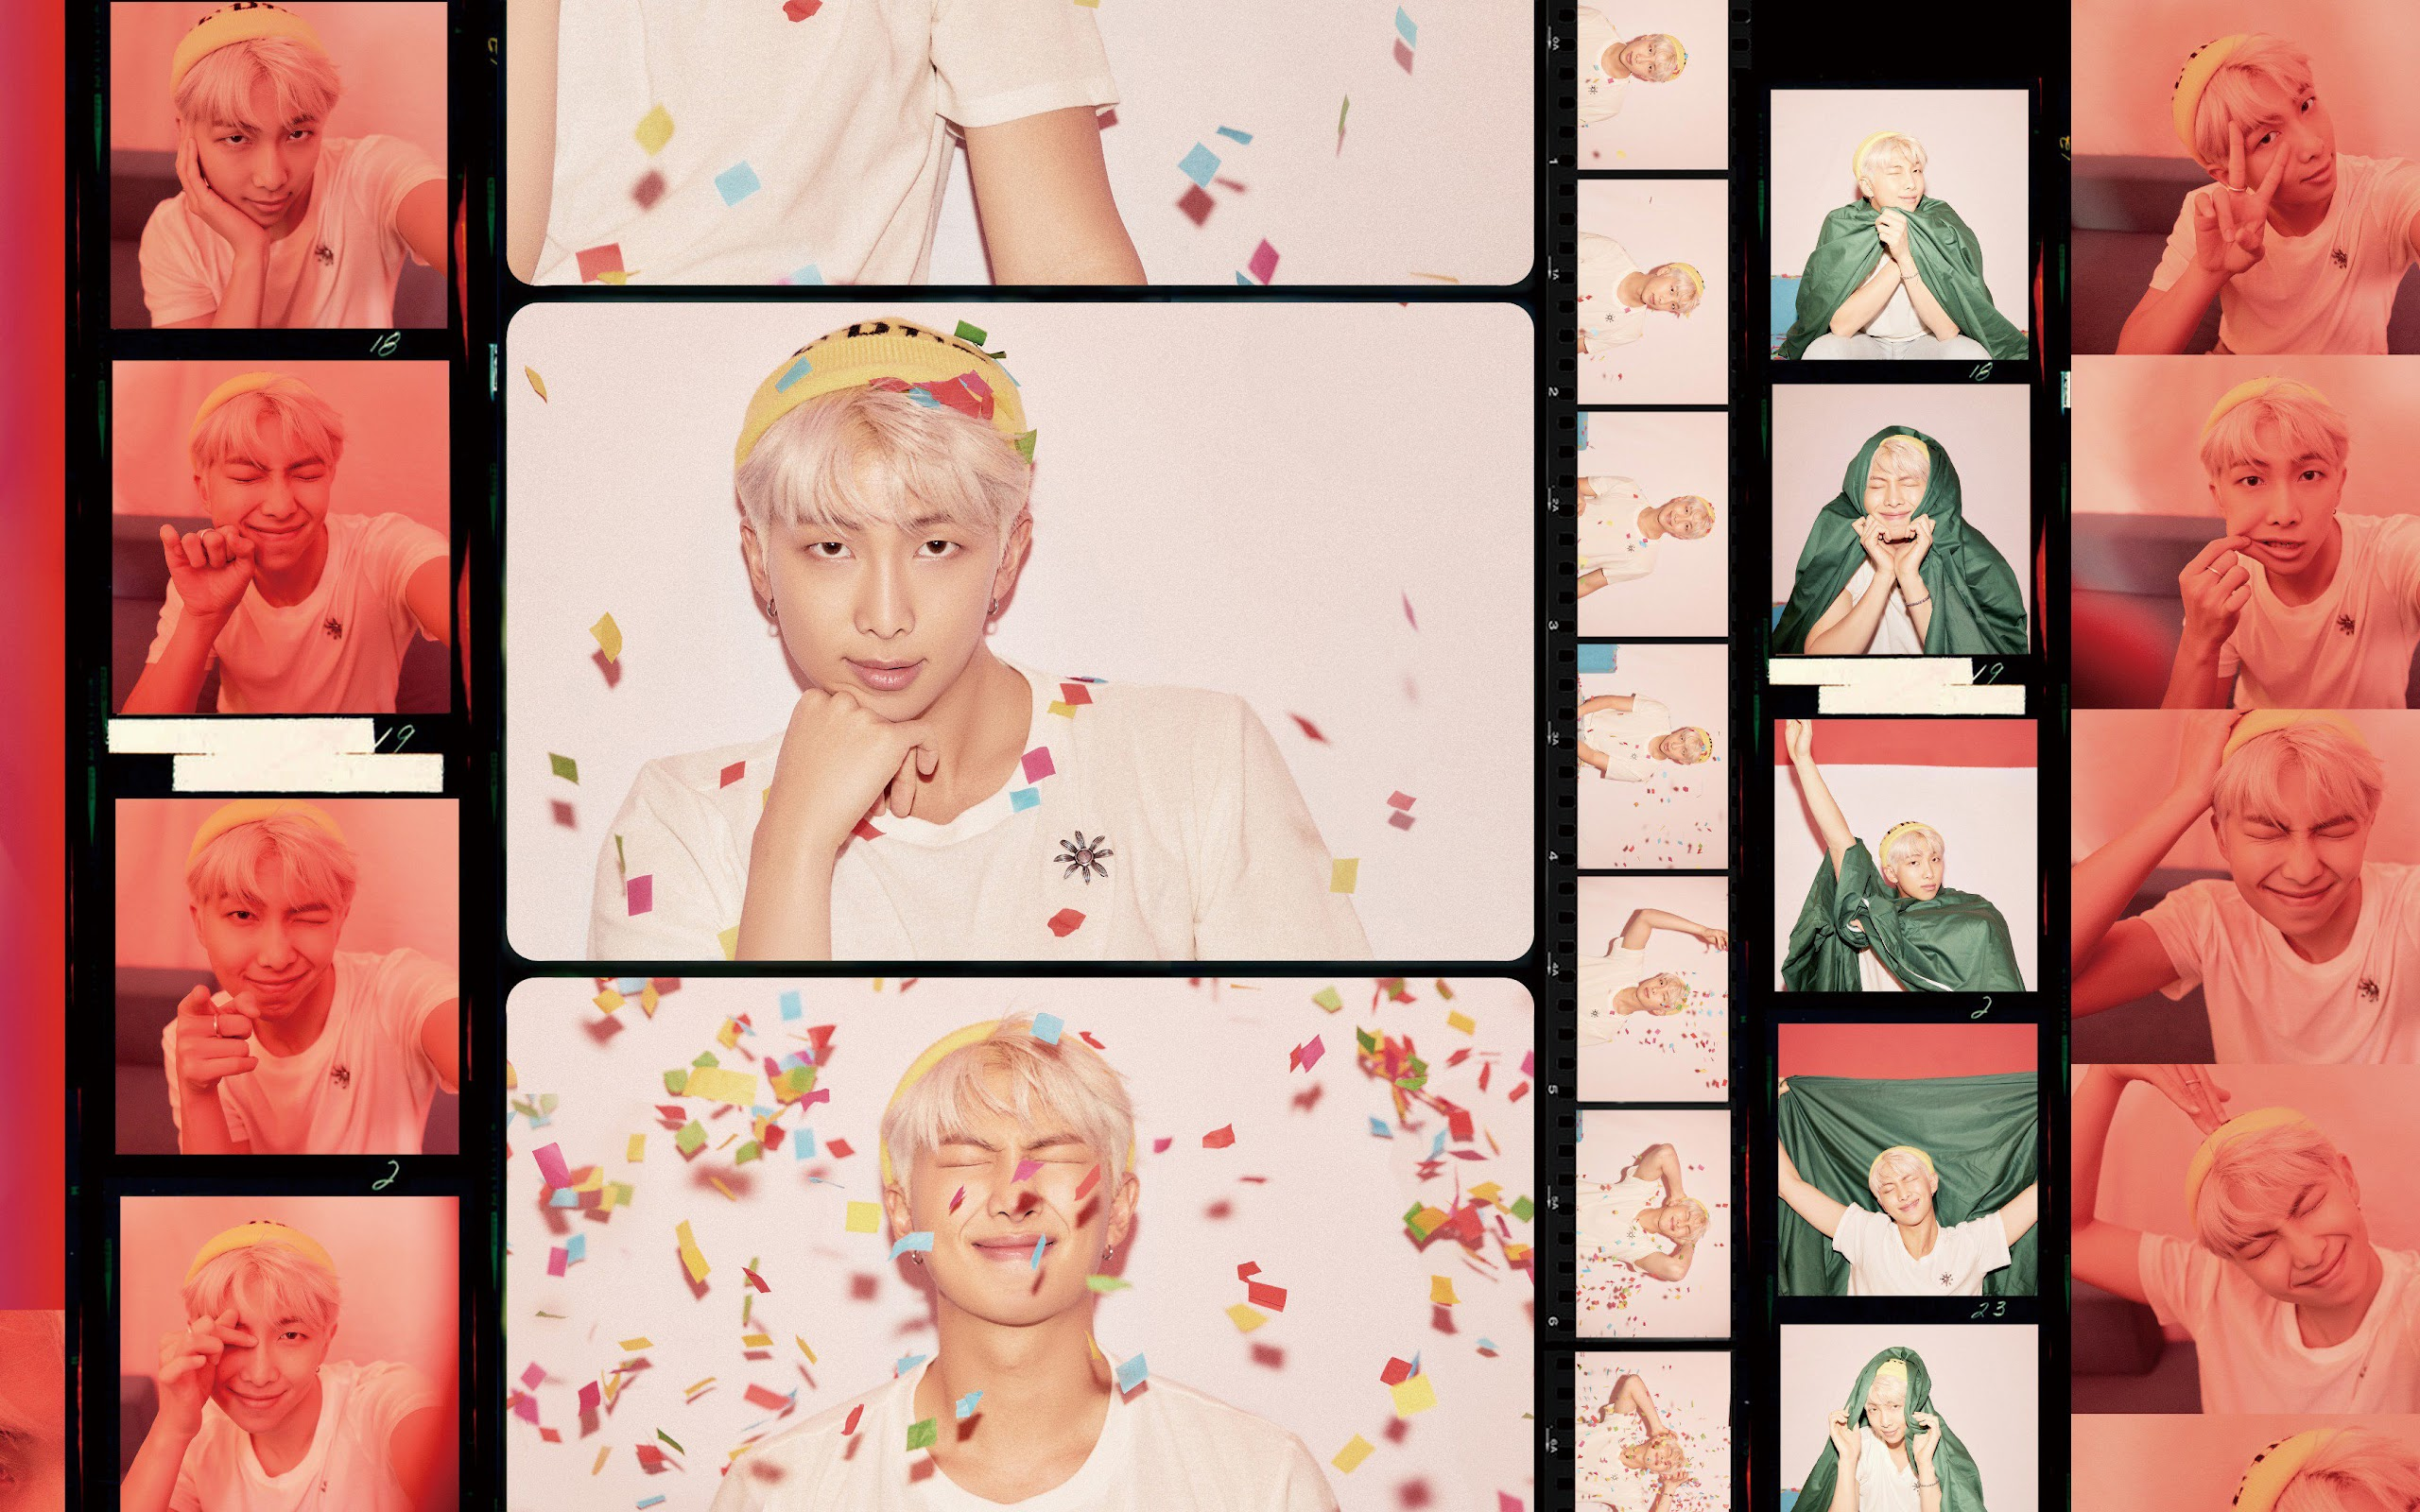 rm bts map of the soul persona uhdpaper.com 4K 22